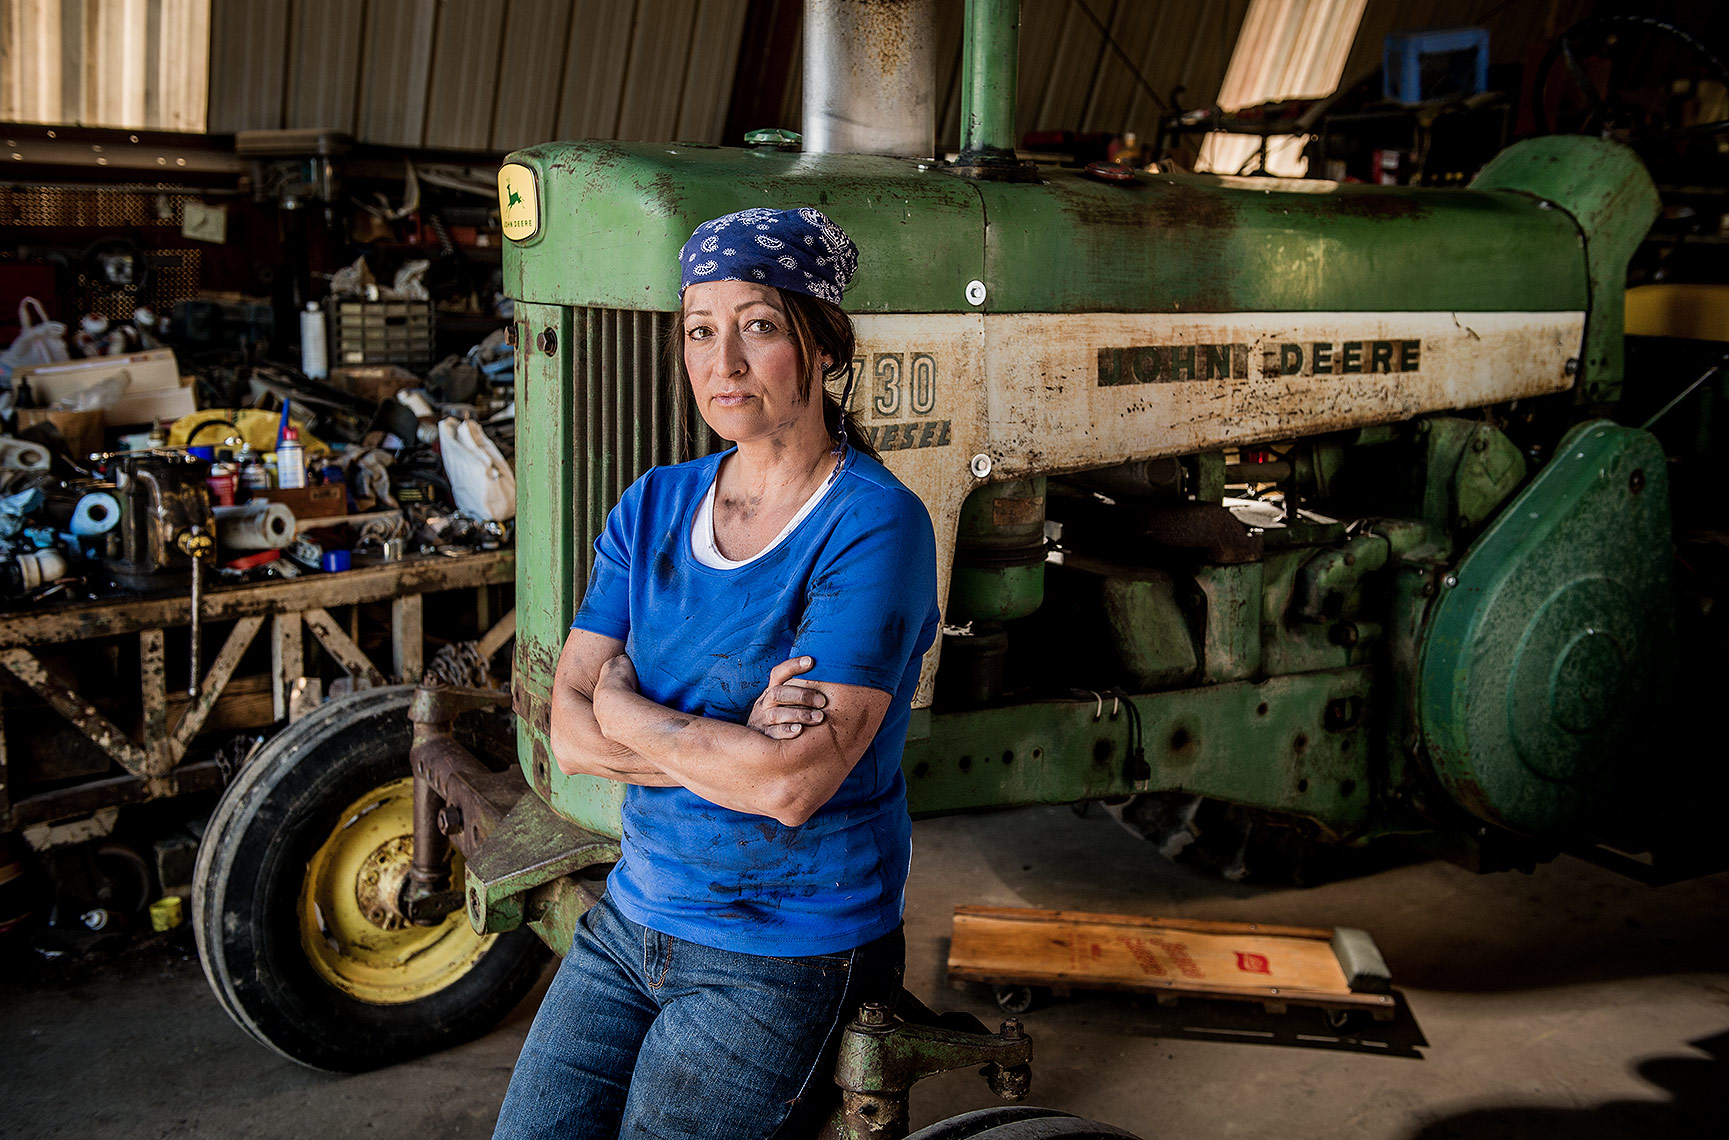 Woman Mechanic Photograph